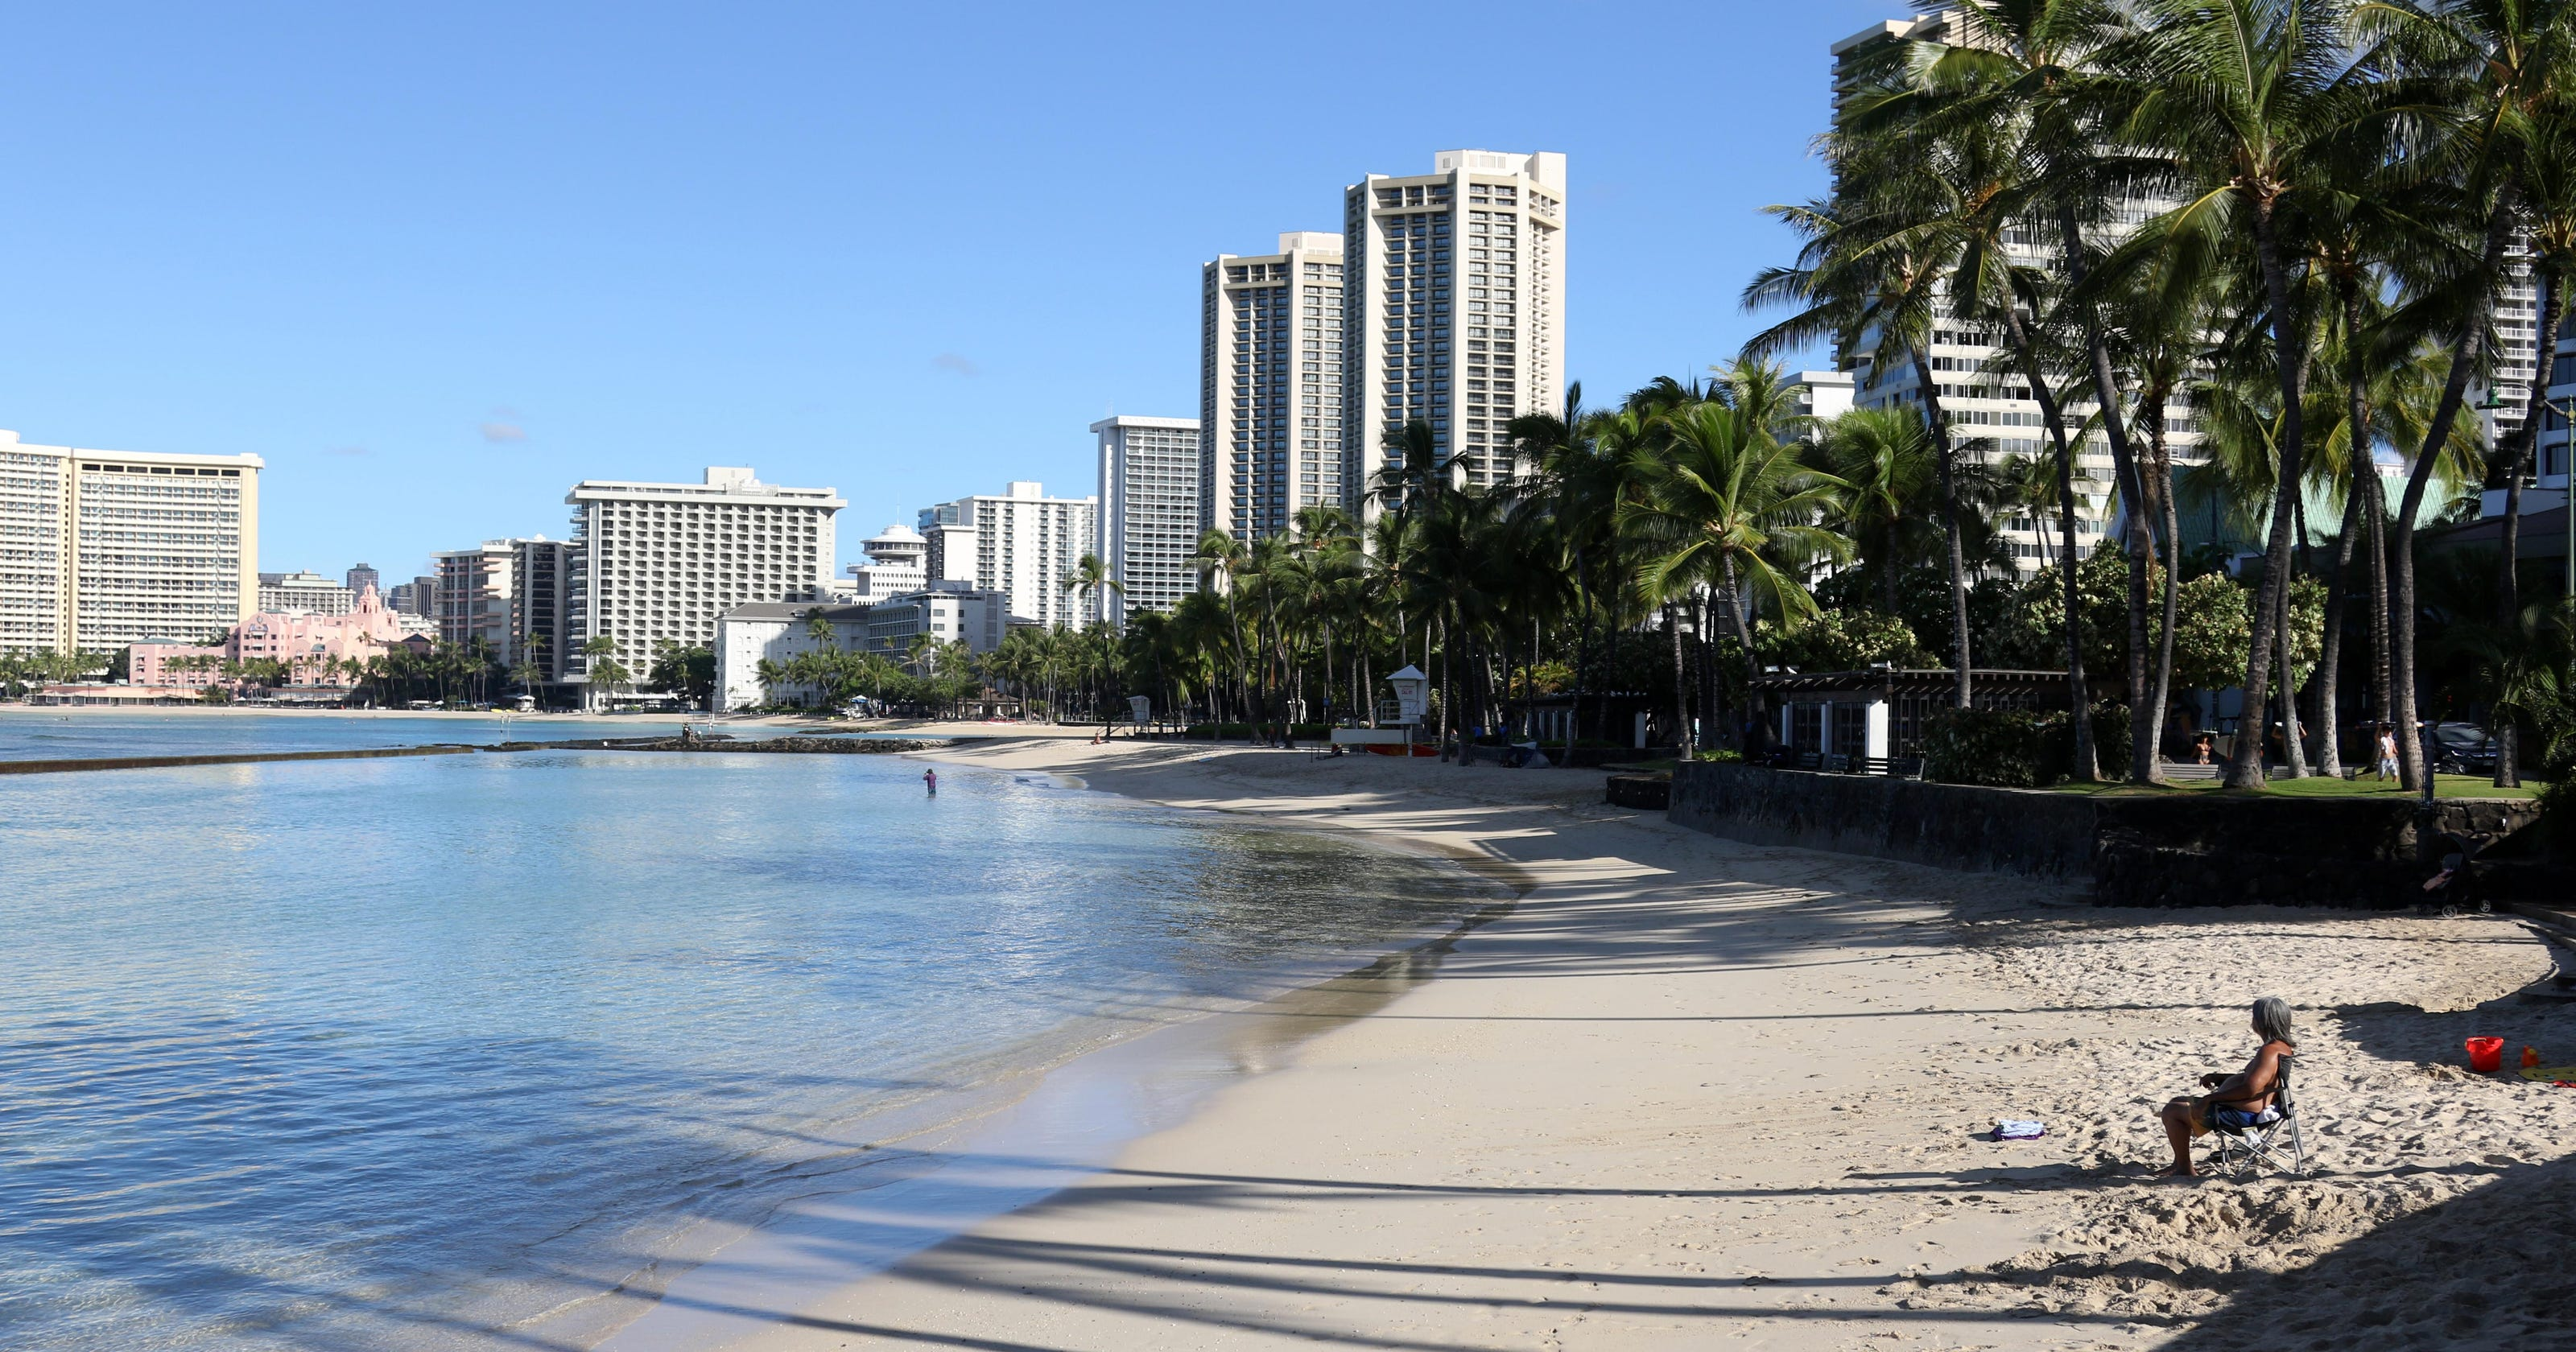 Latest Hawaii travel restrictions: What you need to know